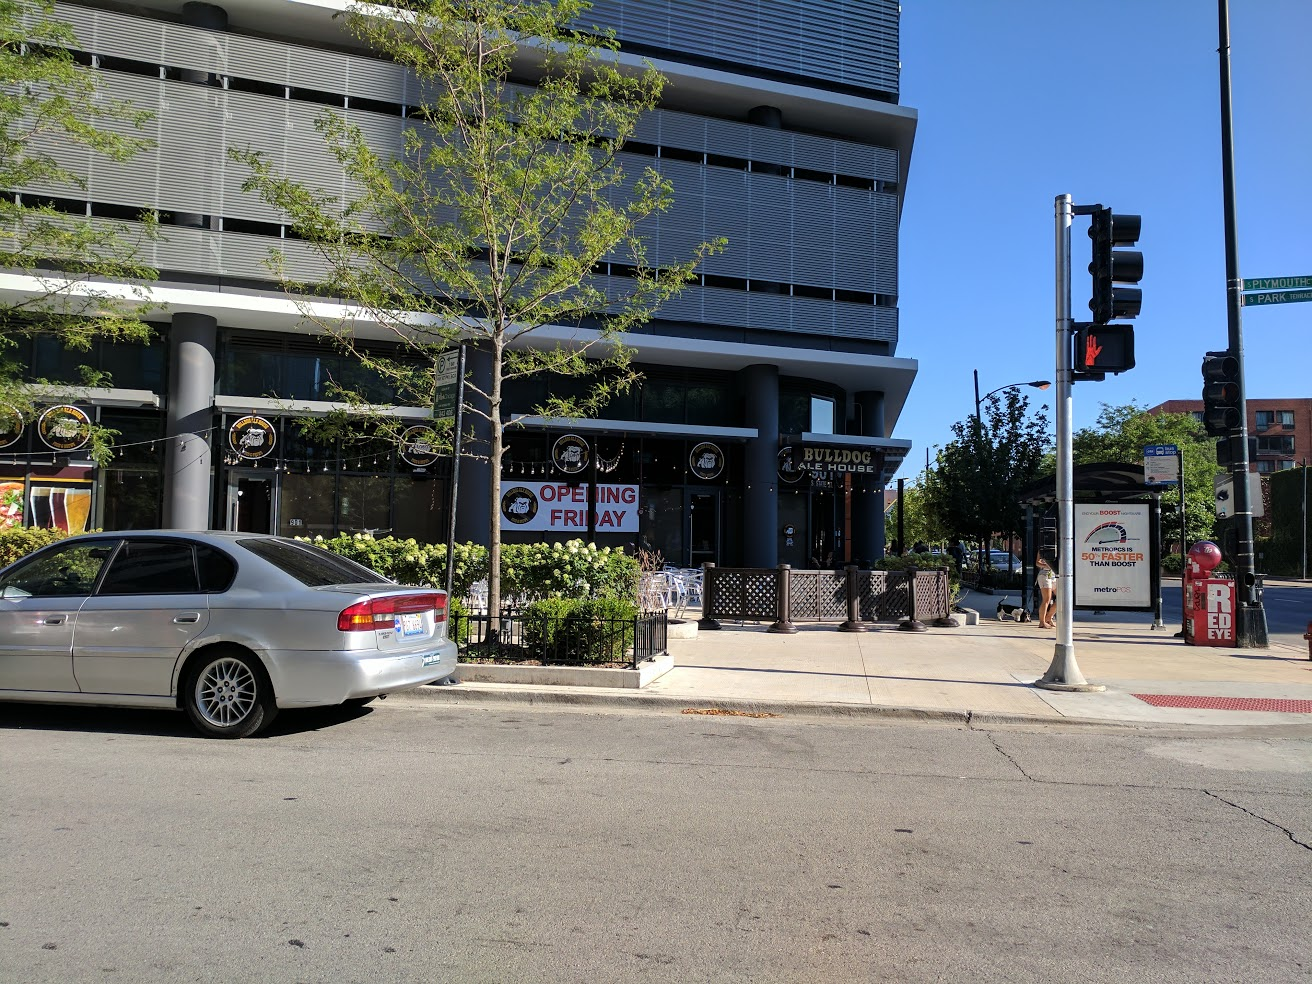 sloopin - a south loop blog: bulldog ale house apparently opening